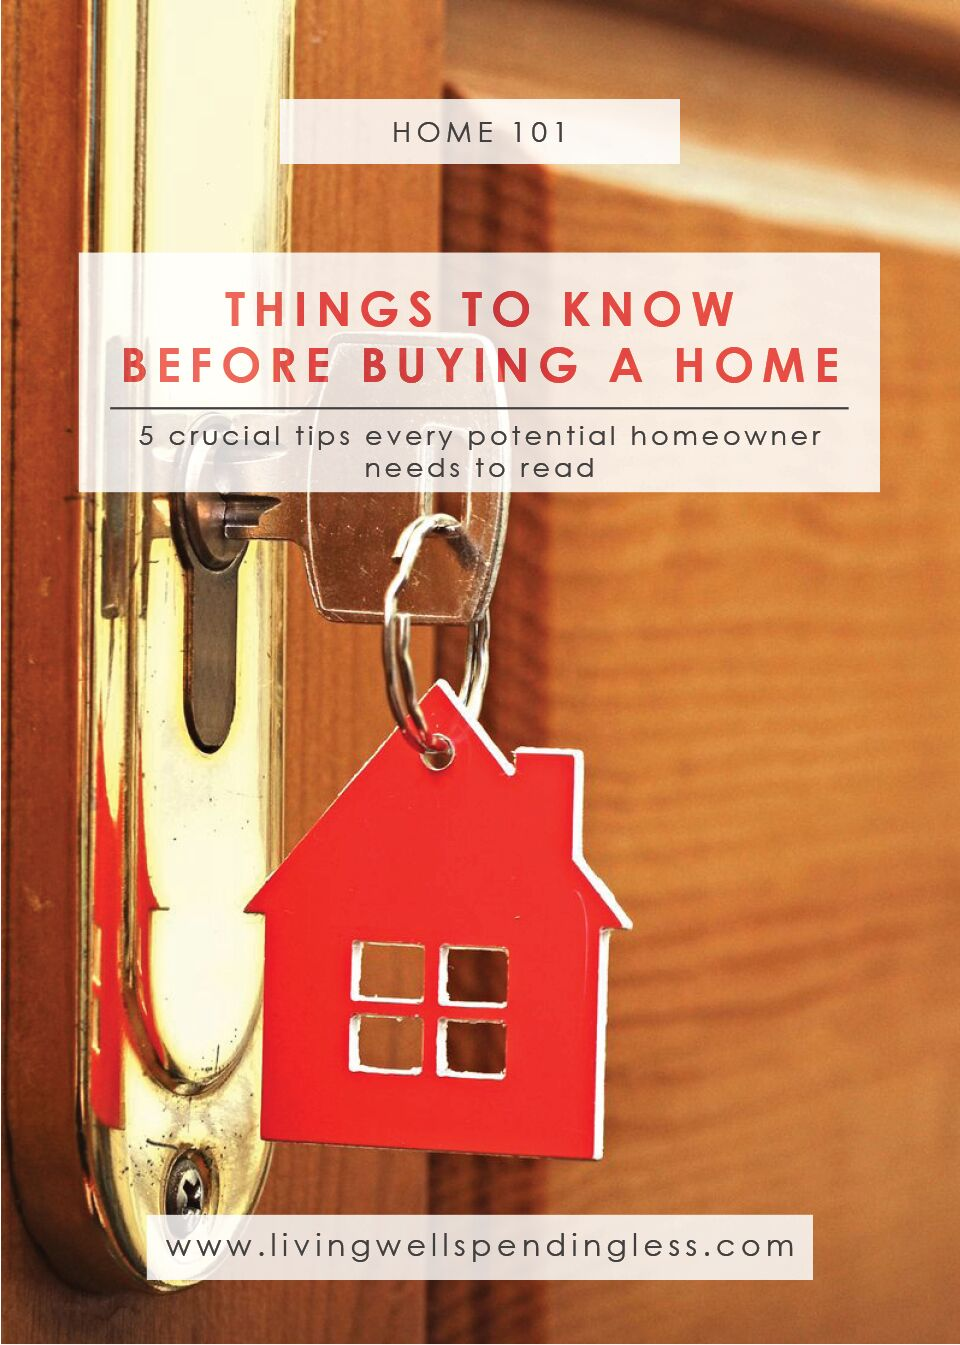 Read these crucial tips every potential homeowner needs to know. Here are 5 things to know before buying a home.